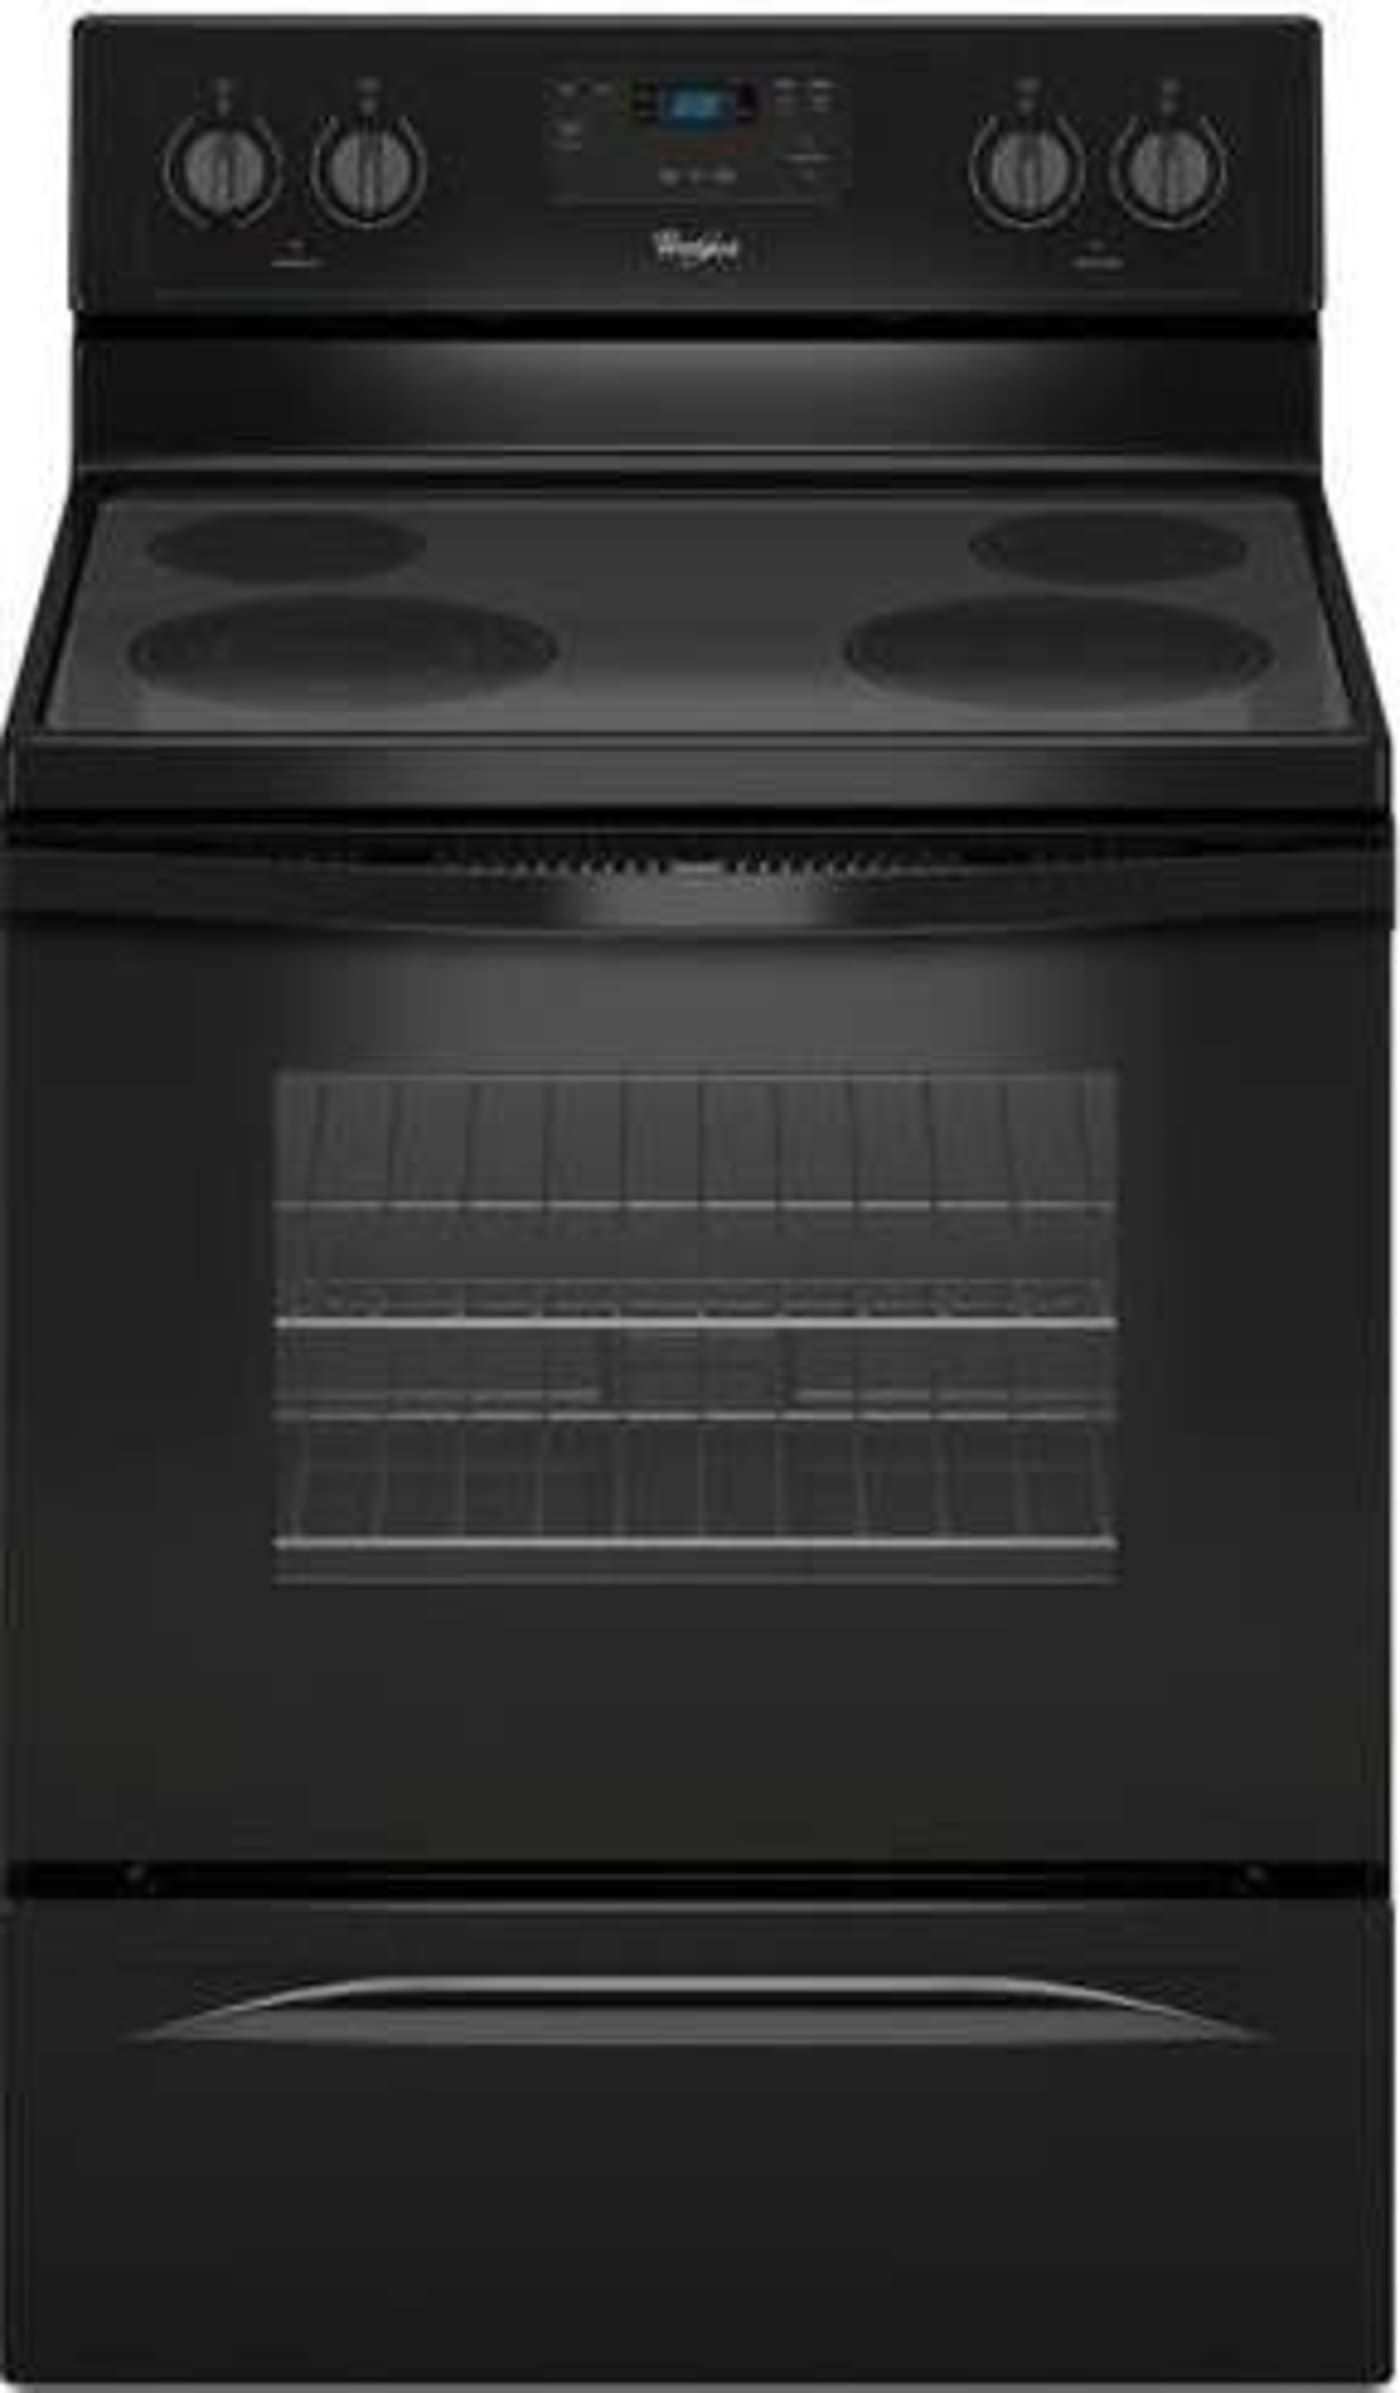 Whirlpool Wfe320m0eb Hot Sellers In 2019 Oven Range Oven Racks Kitchen Appliances